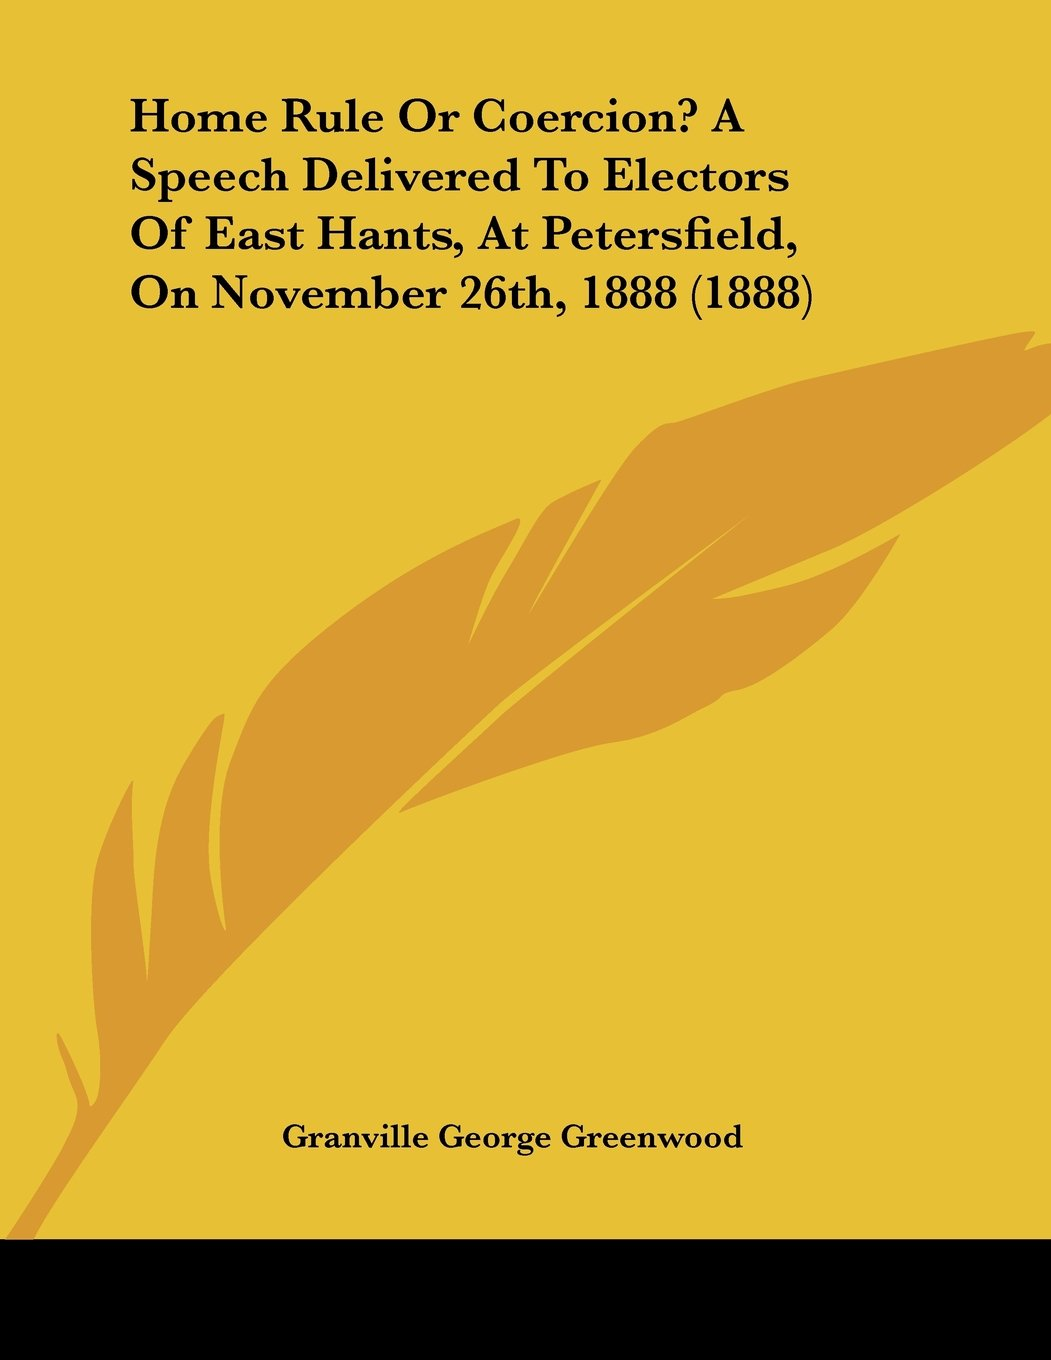 Home Rule Or Coercion? A Speech Delivered To Electors Of East Hants, At Petersfield, On November 26th, 1888 (1888) PDF